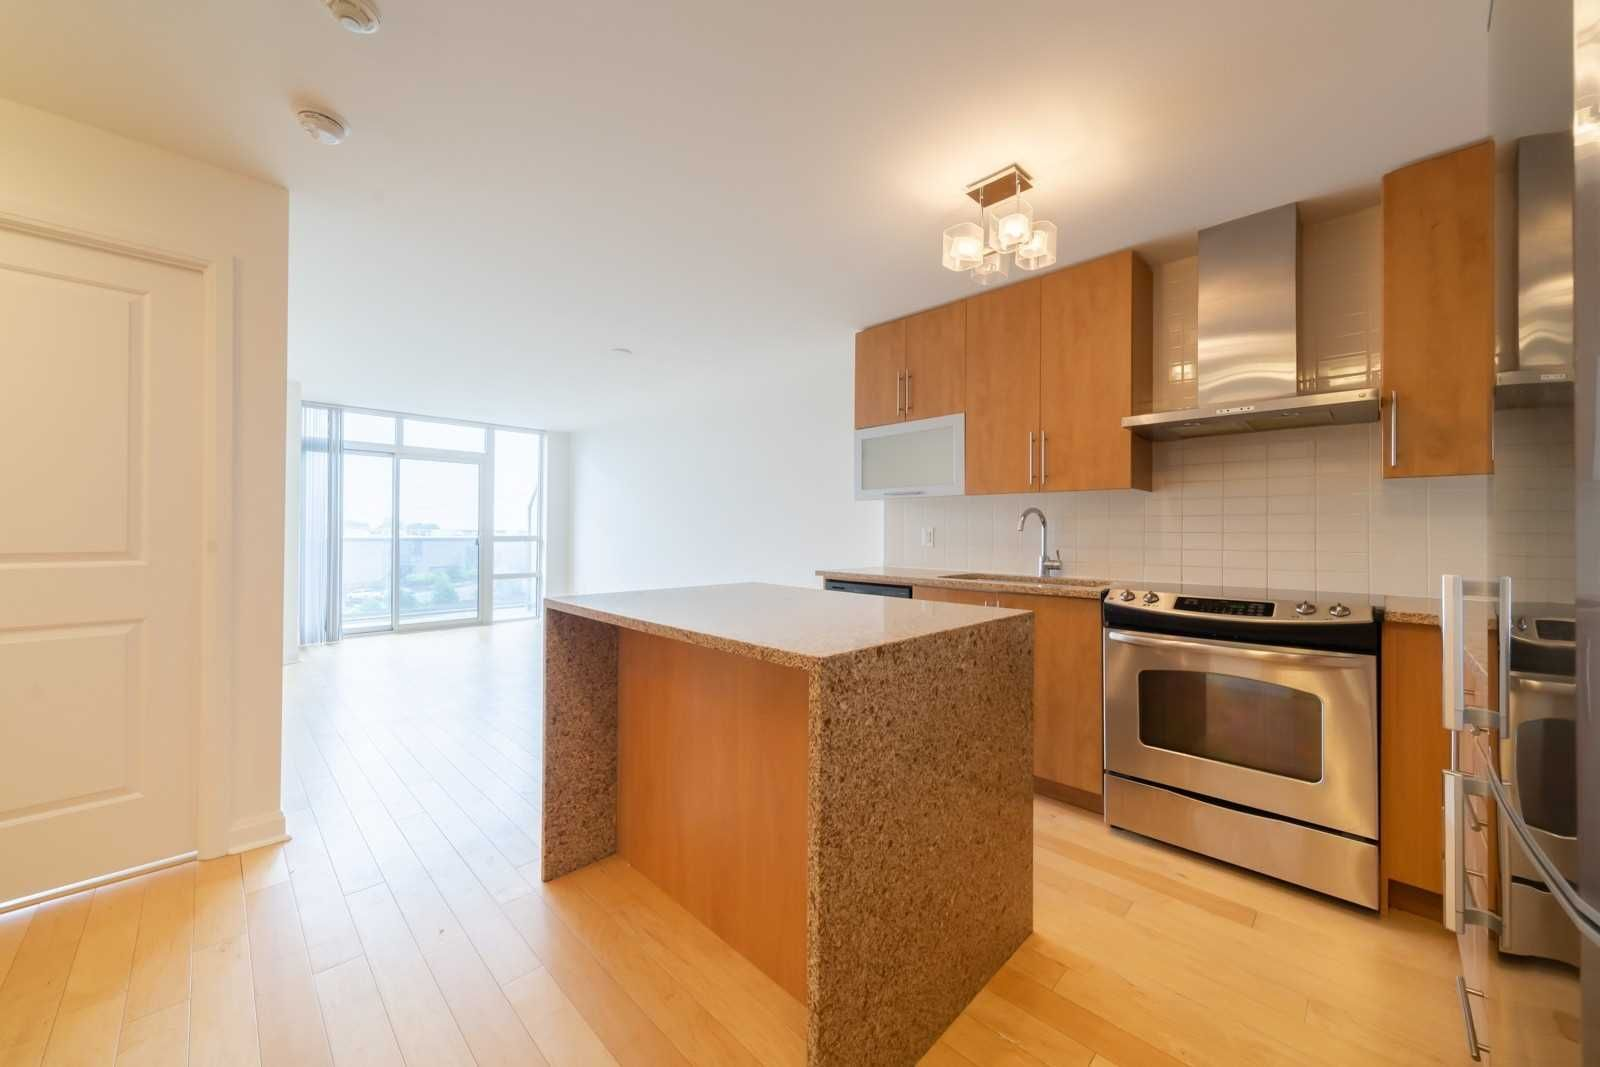 1 Michael Power Pl, unit 406 for rent in Toronto - image #1